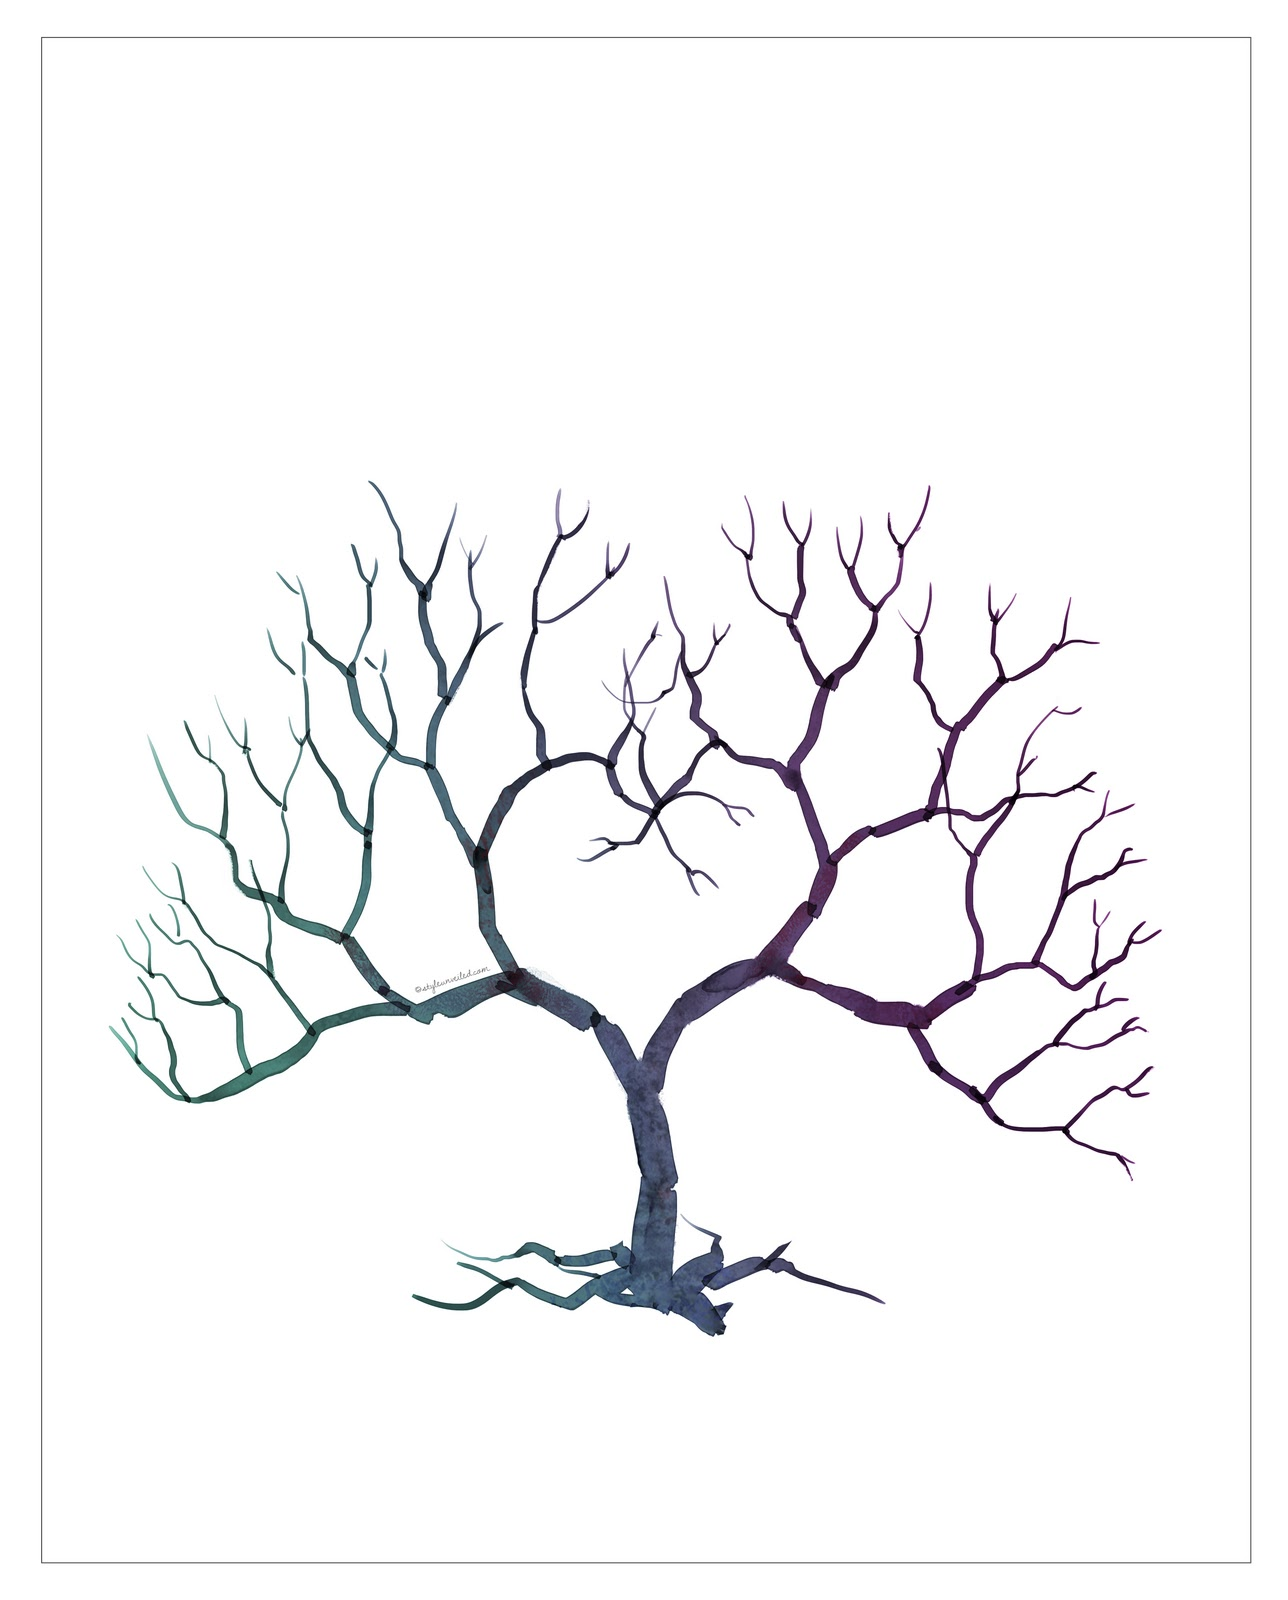 family tree template family tree thumbprint template With family tree thumbprint template